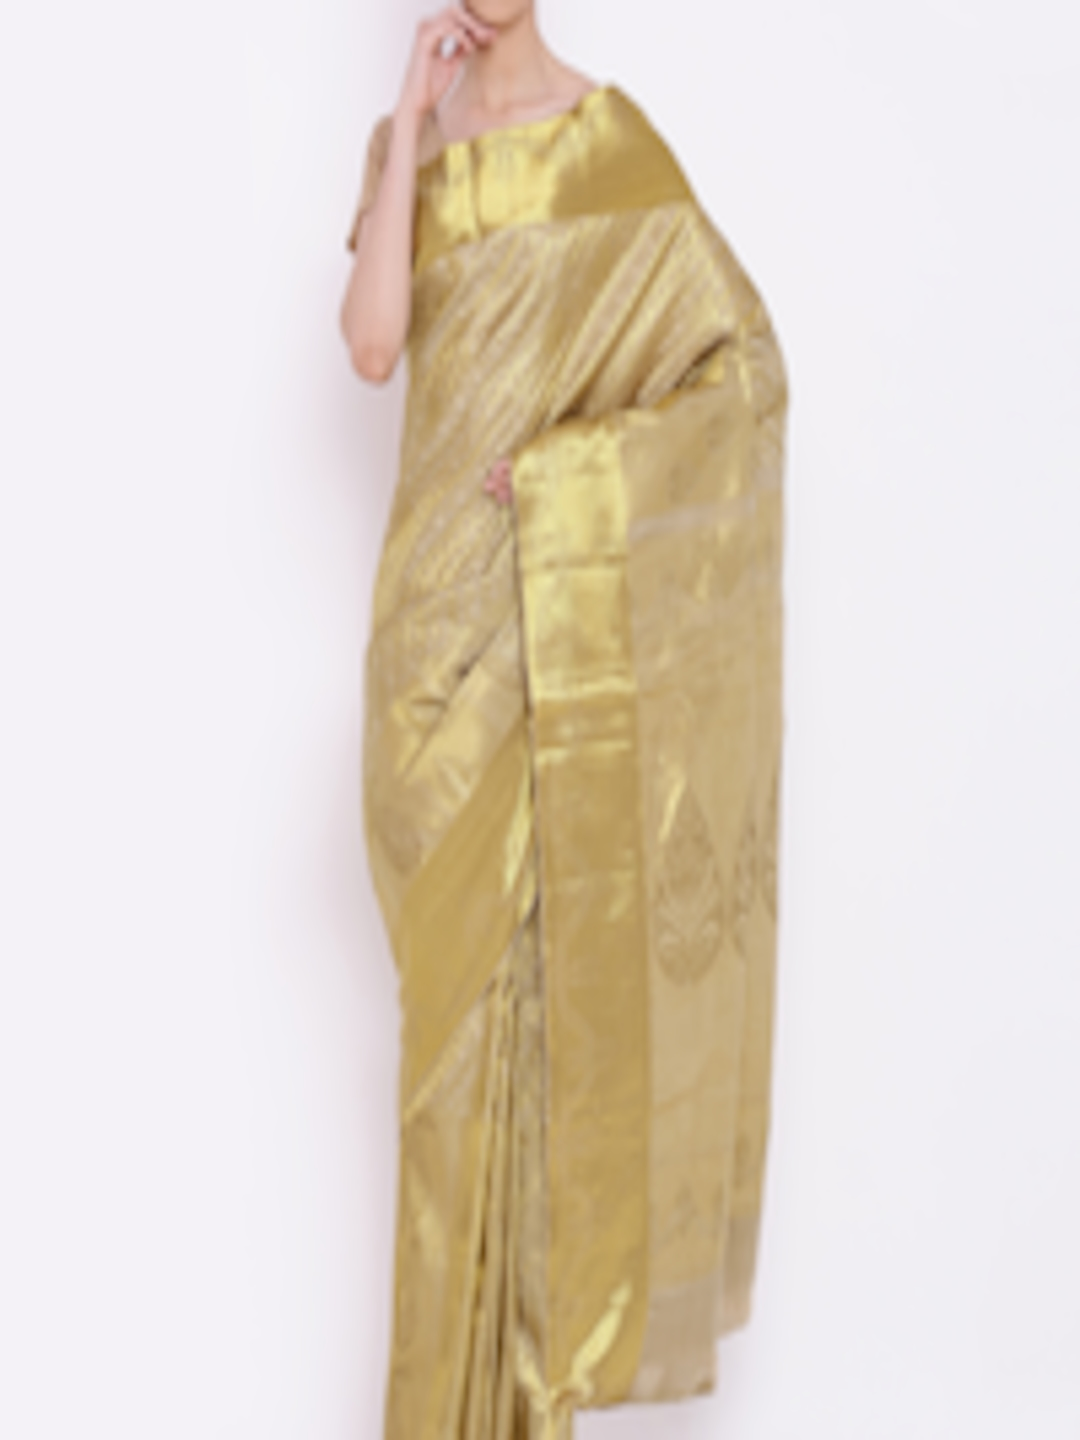 Buy The Chennai Silks Classicate Beige Amp Gold Toned Pure